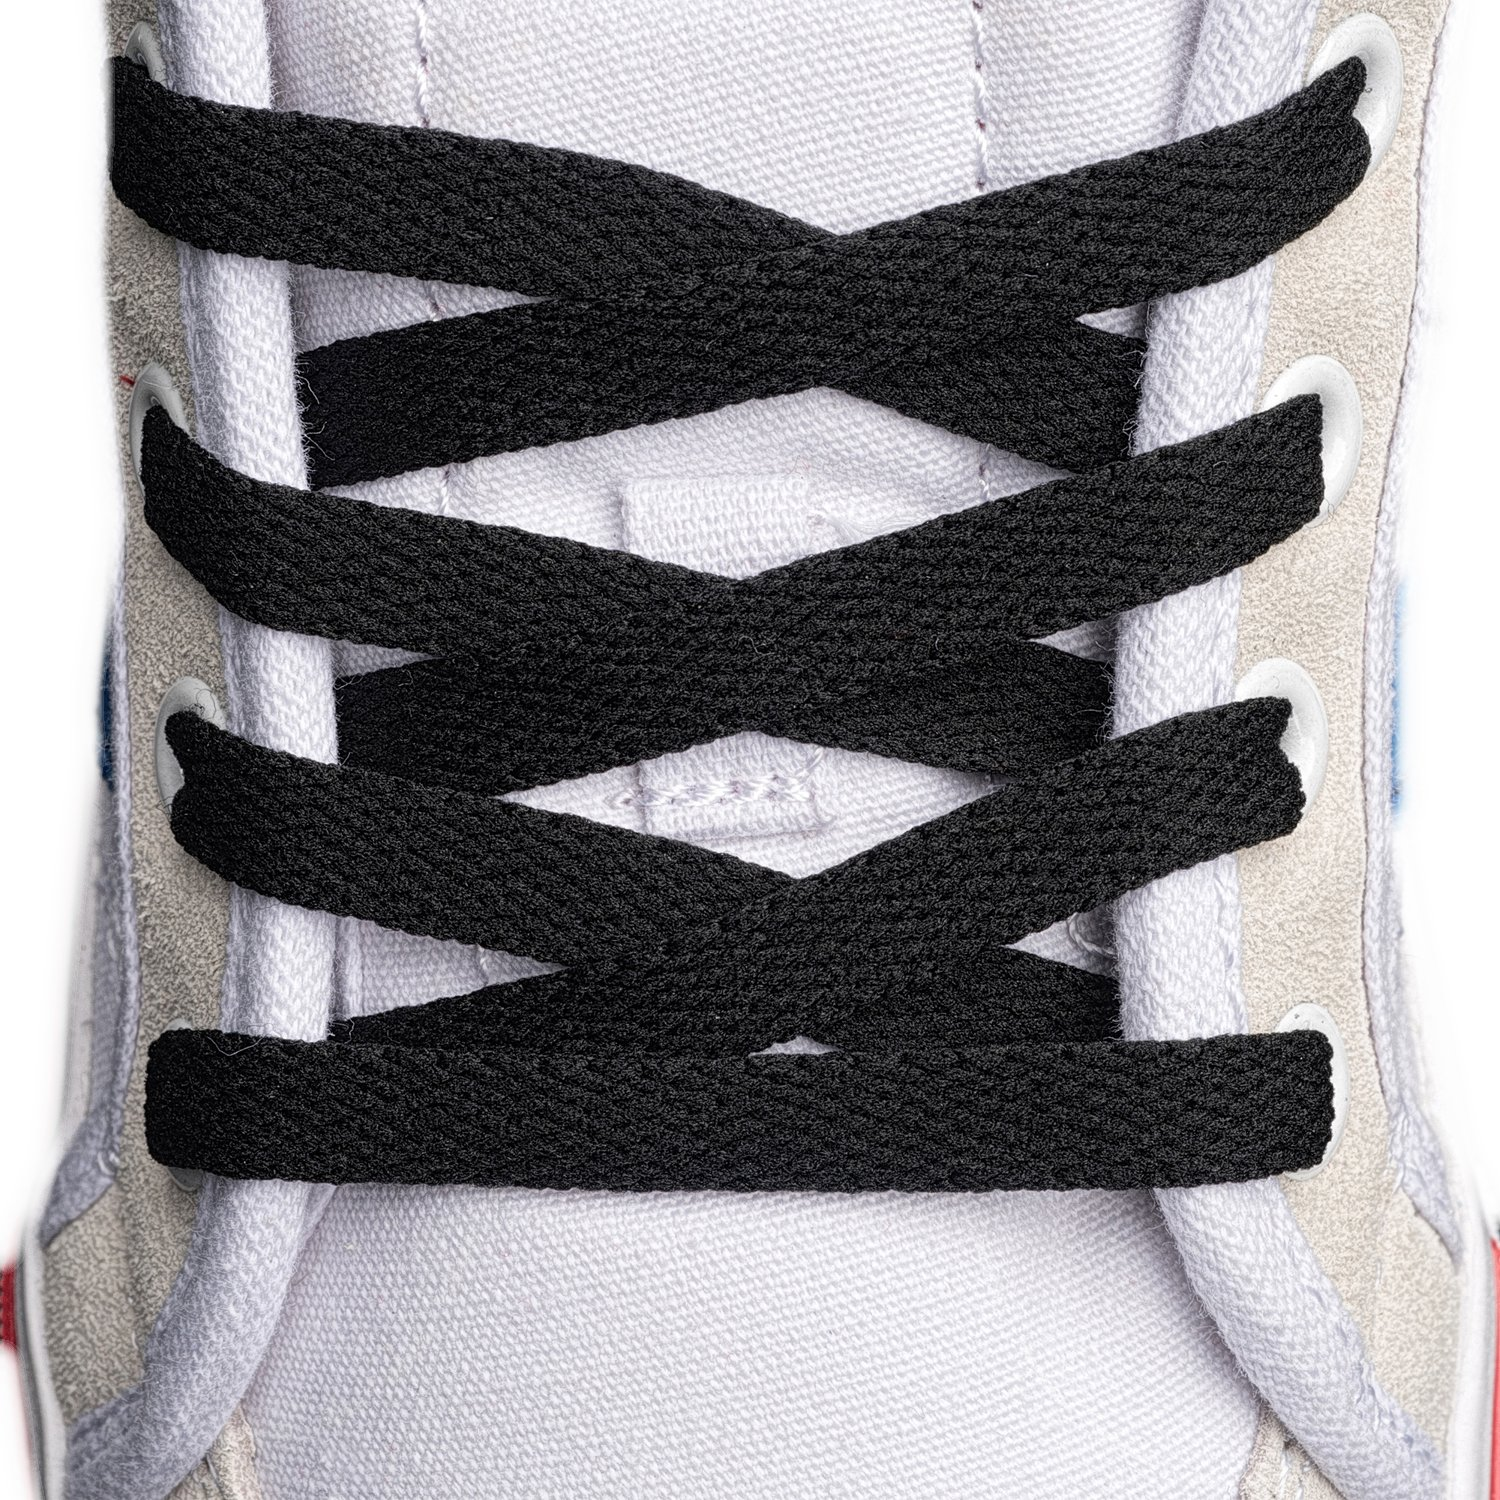 95820e1682ba22 Flat Shoe laces 5 16 (2 Pair) - for sneakers and other shoes shoelace  replacements  Amazon.ca  Shoes   Handbags